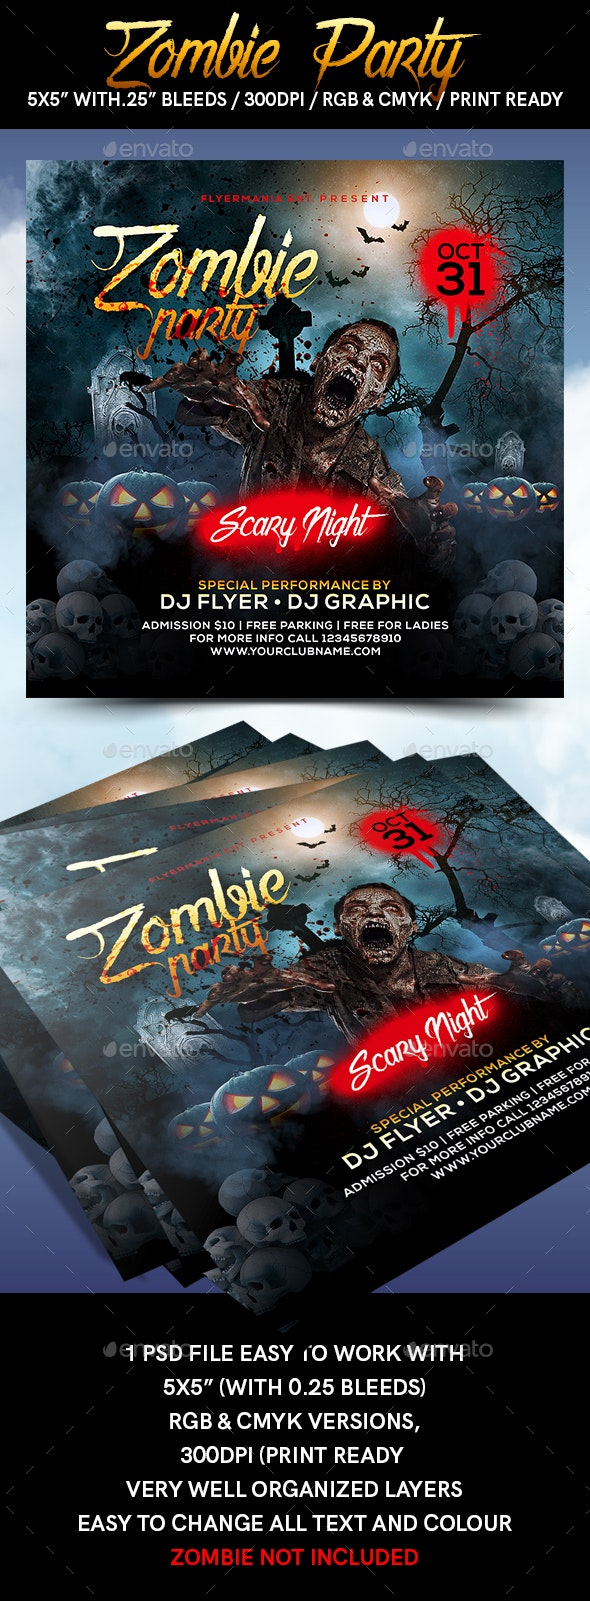 Zombie Party Flyer Template - Flyers Print Templates